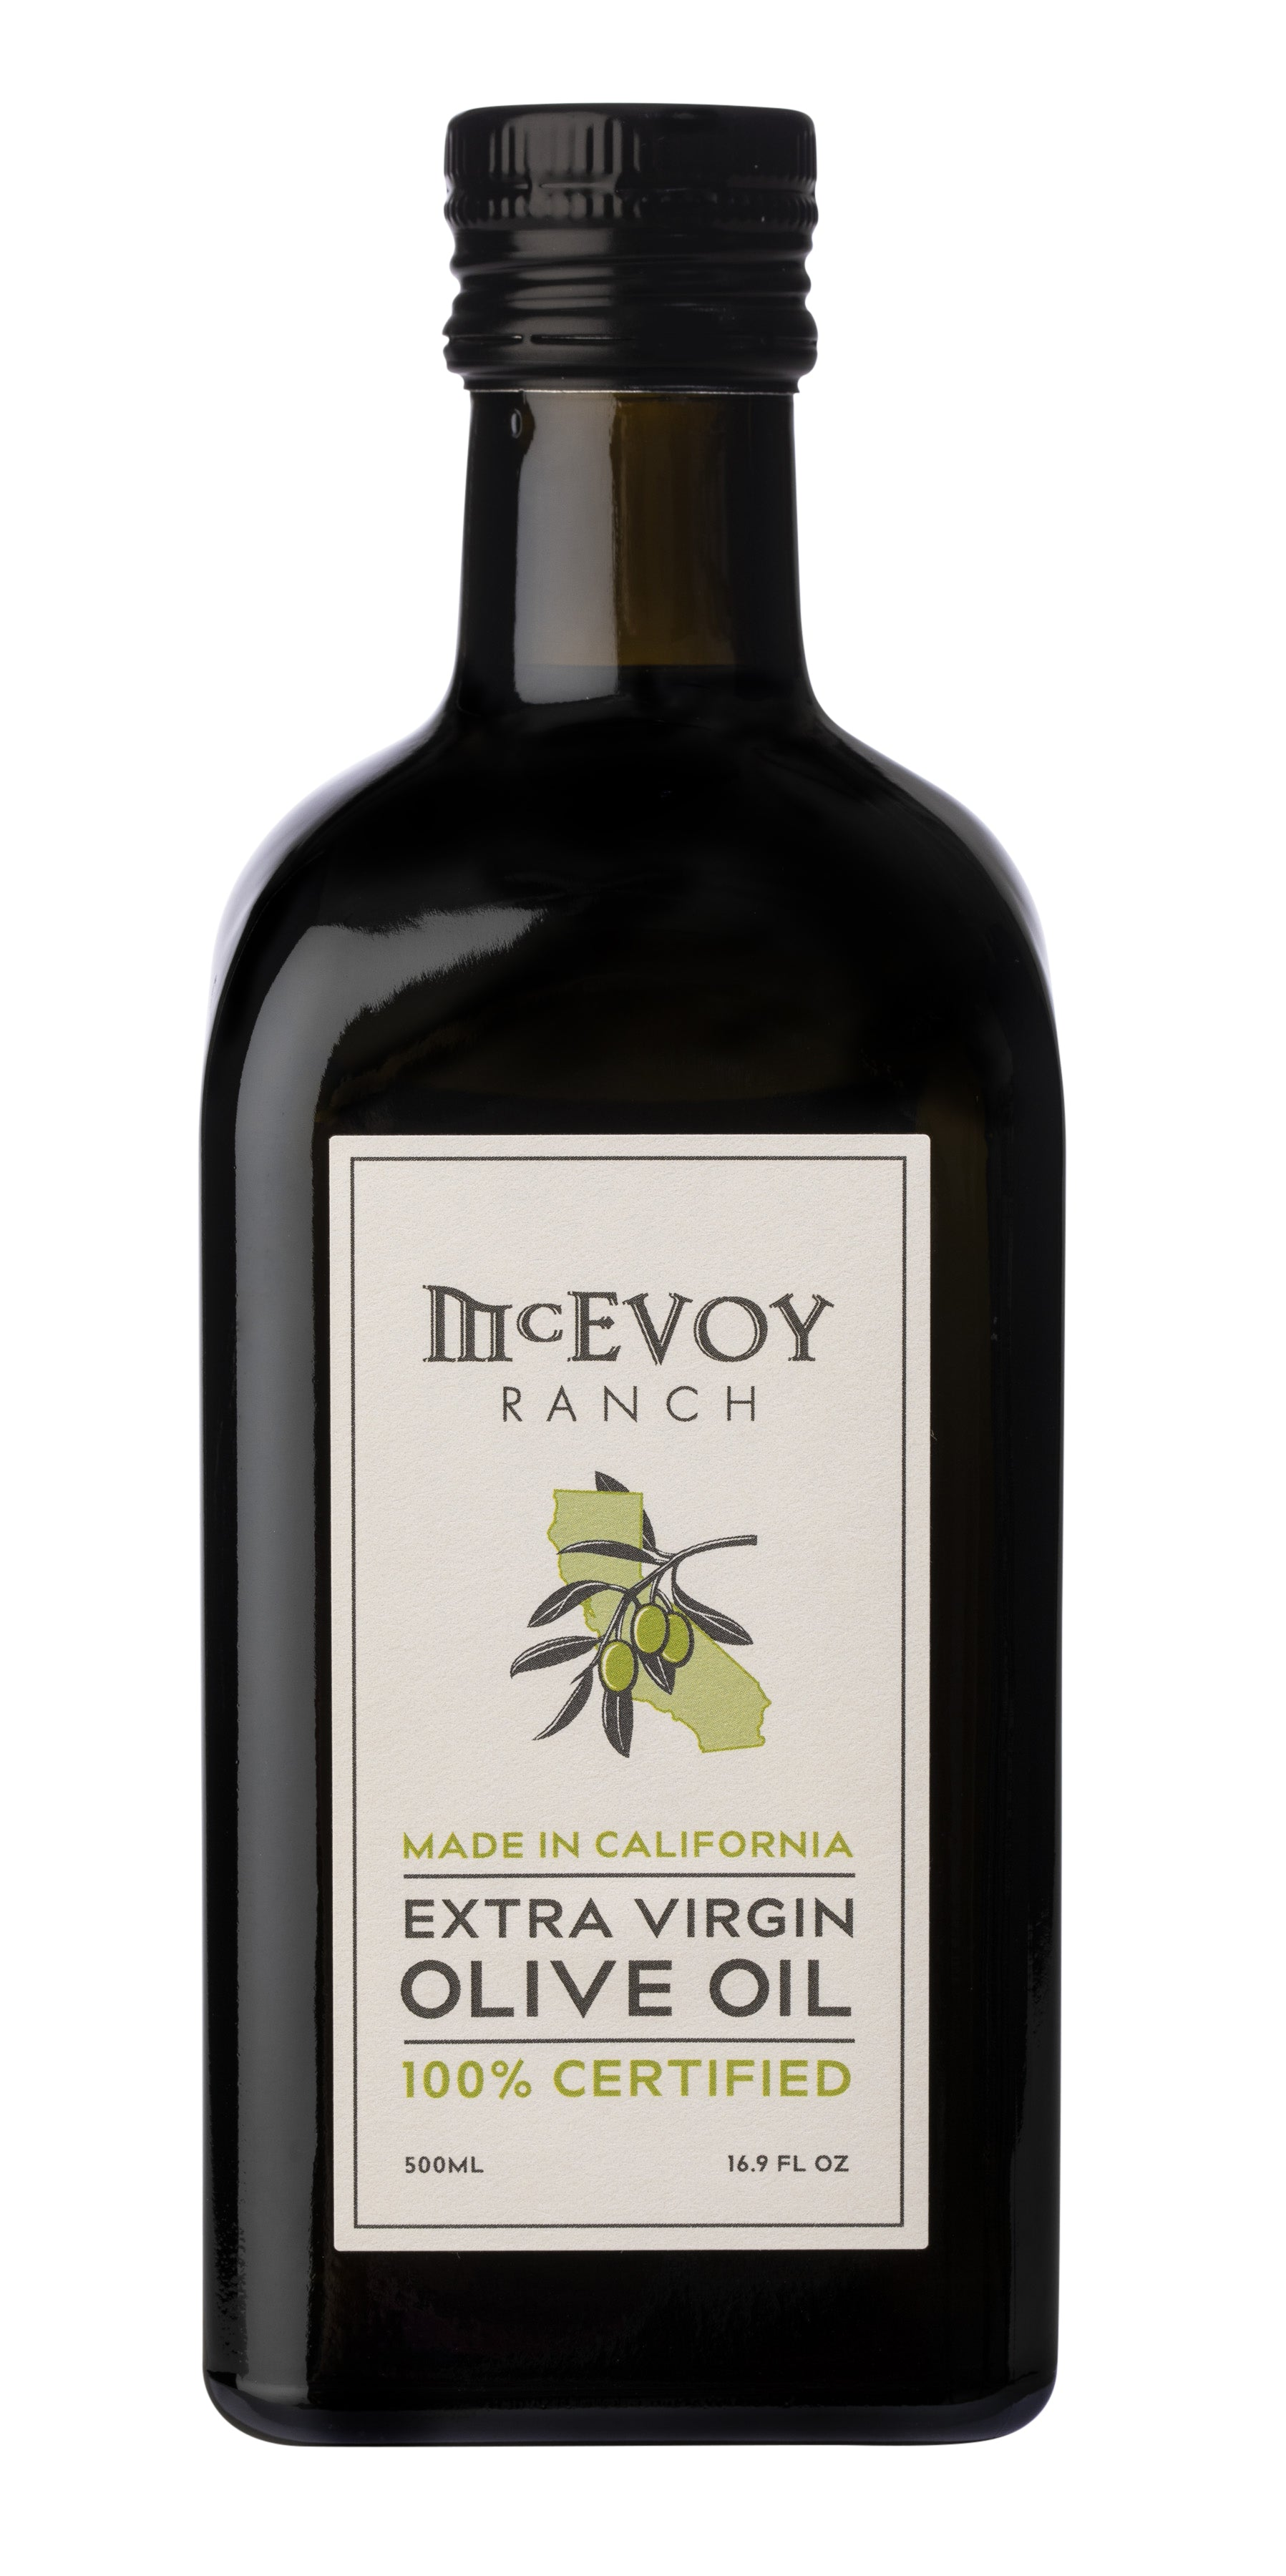 A New Olive Oil For McEvoy Ranch